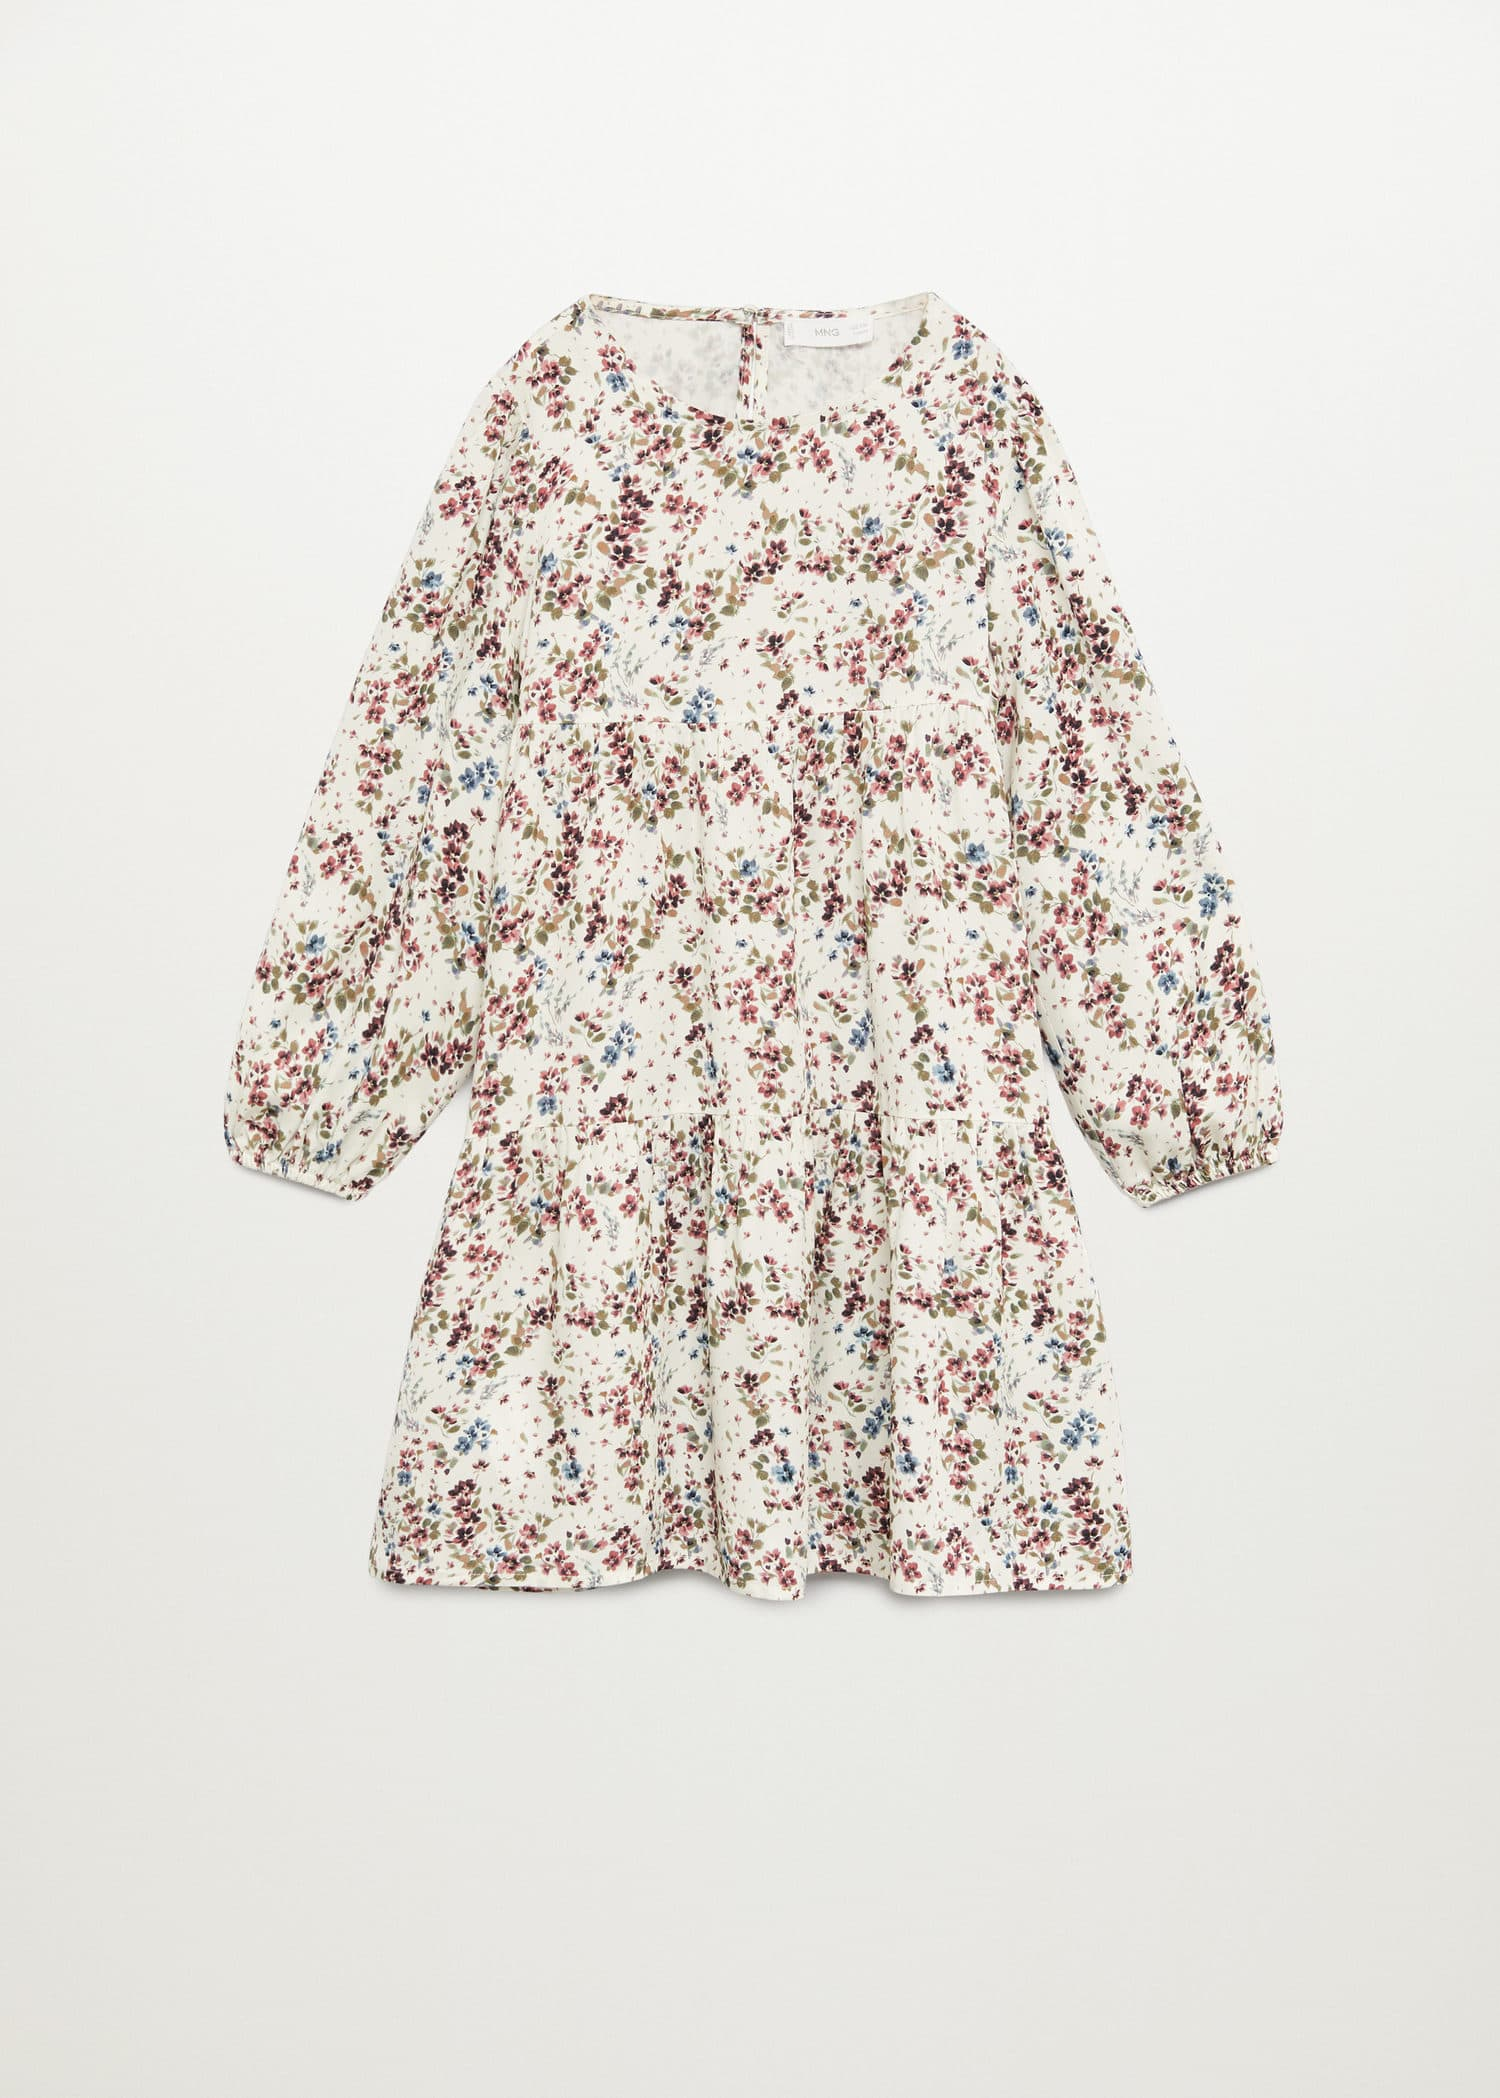 Flowy flower printed dress - Article without model